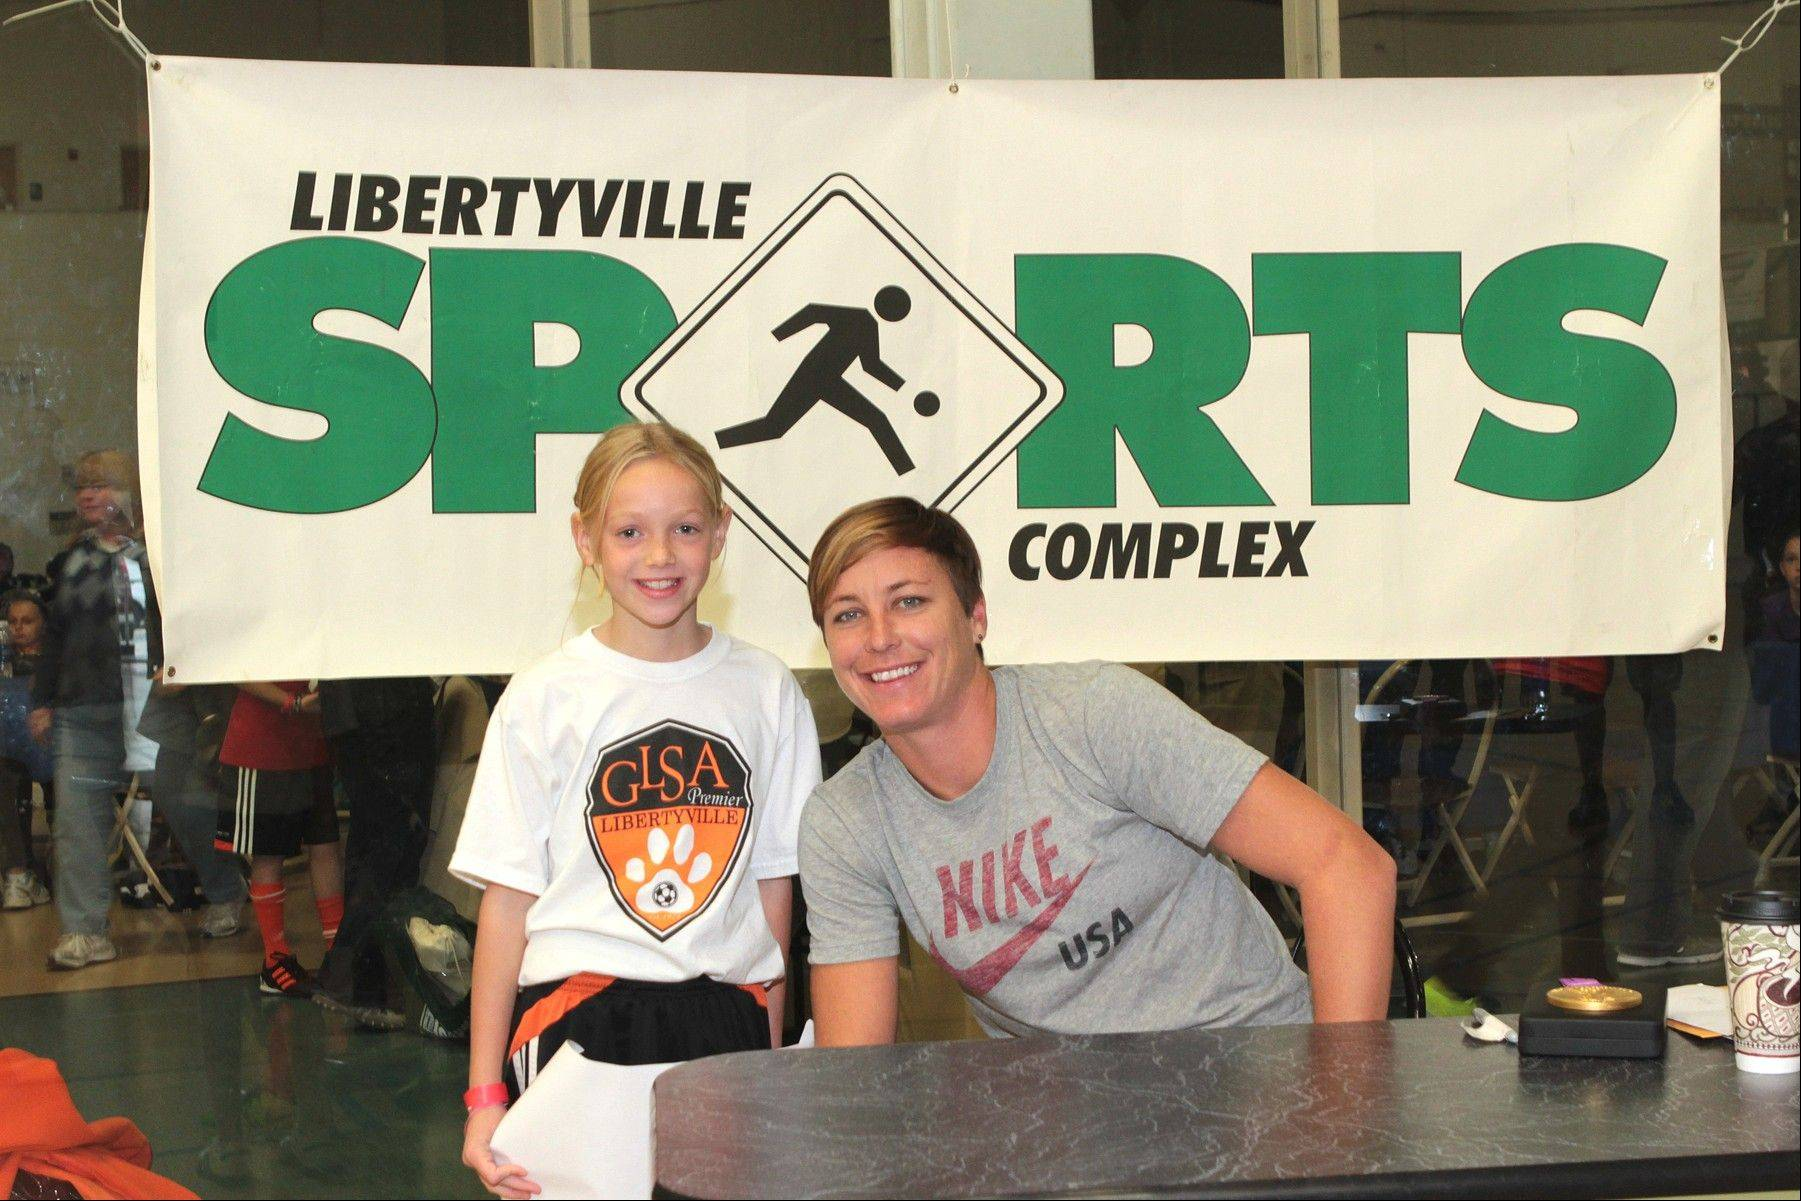 Team USA women's soccer star Abby Wambach poses with Libertyville youth soccer player Stella Bechtold during the IYSA Soccer for Success event at the Libertyville Sports Complex last Saturday.